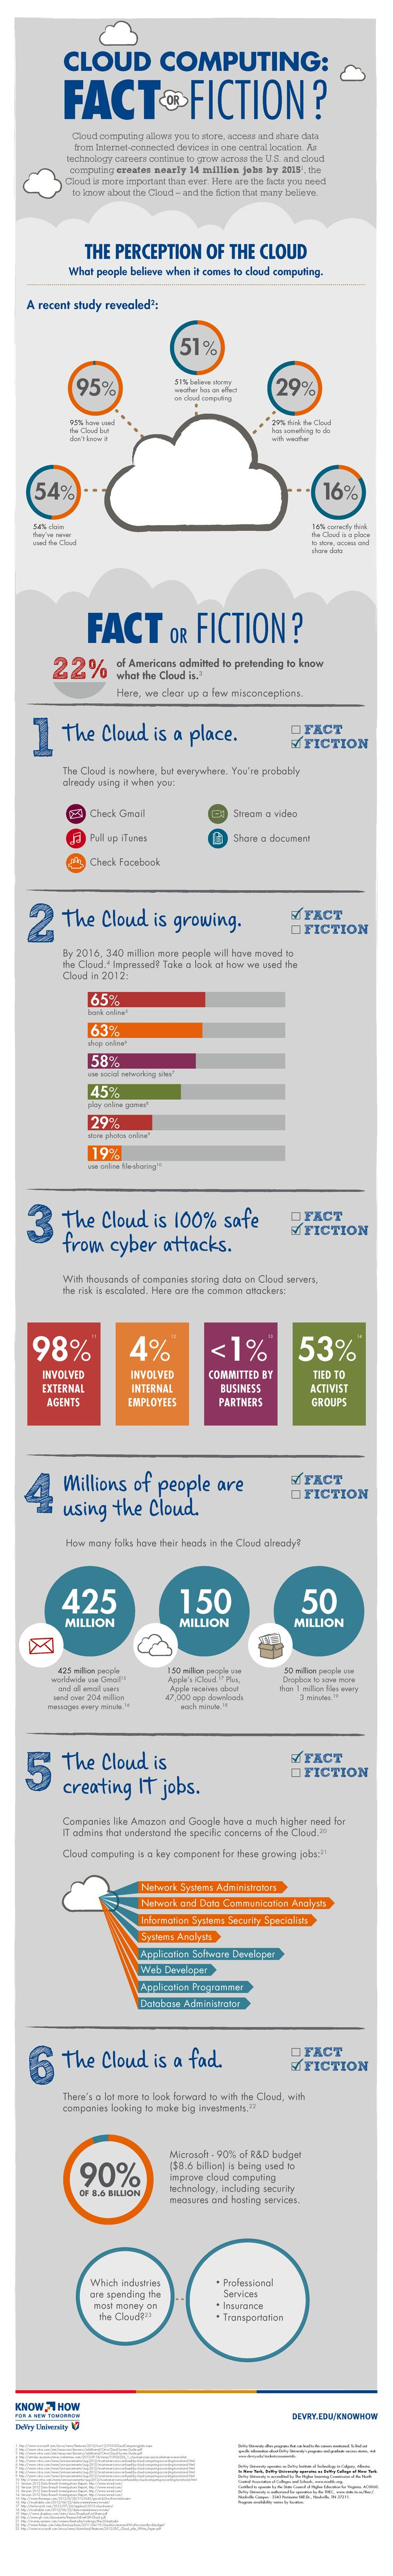 Cloud Computing: Fact or Fiction? - Blog About Infographics and Data Visualization